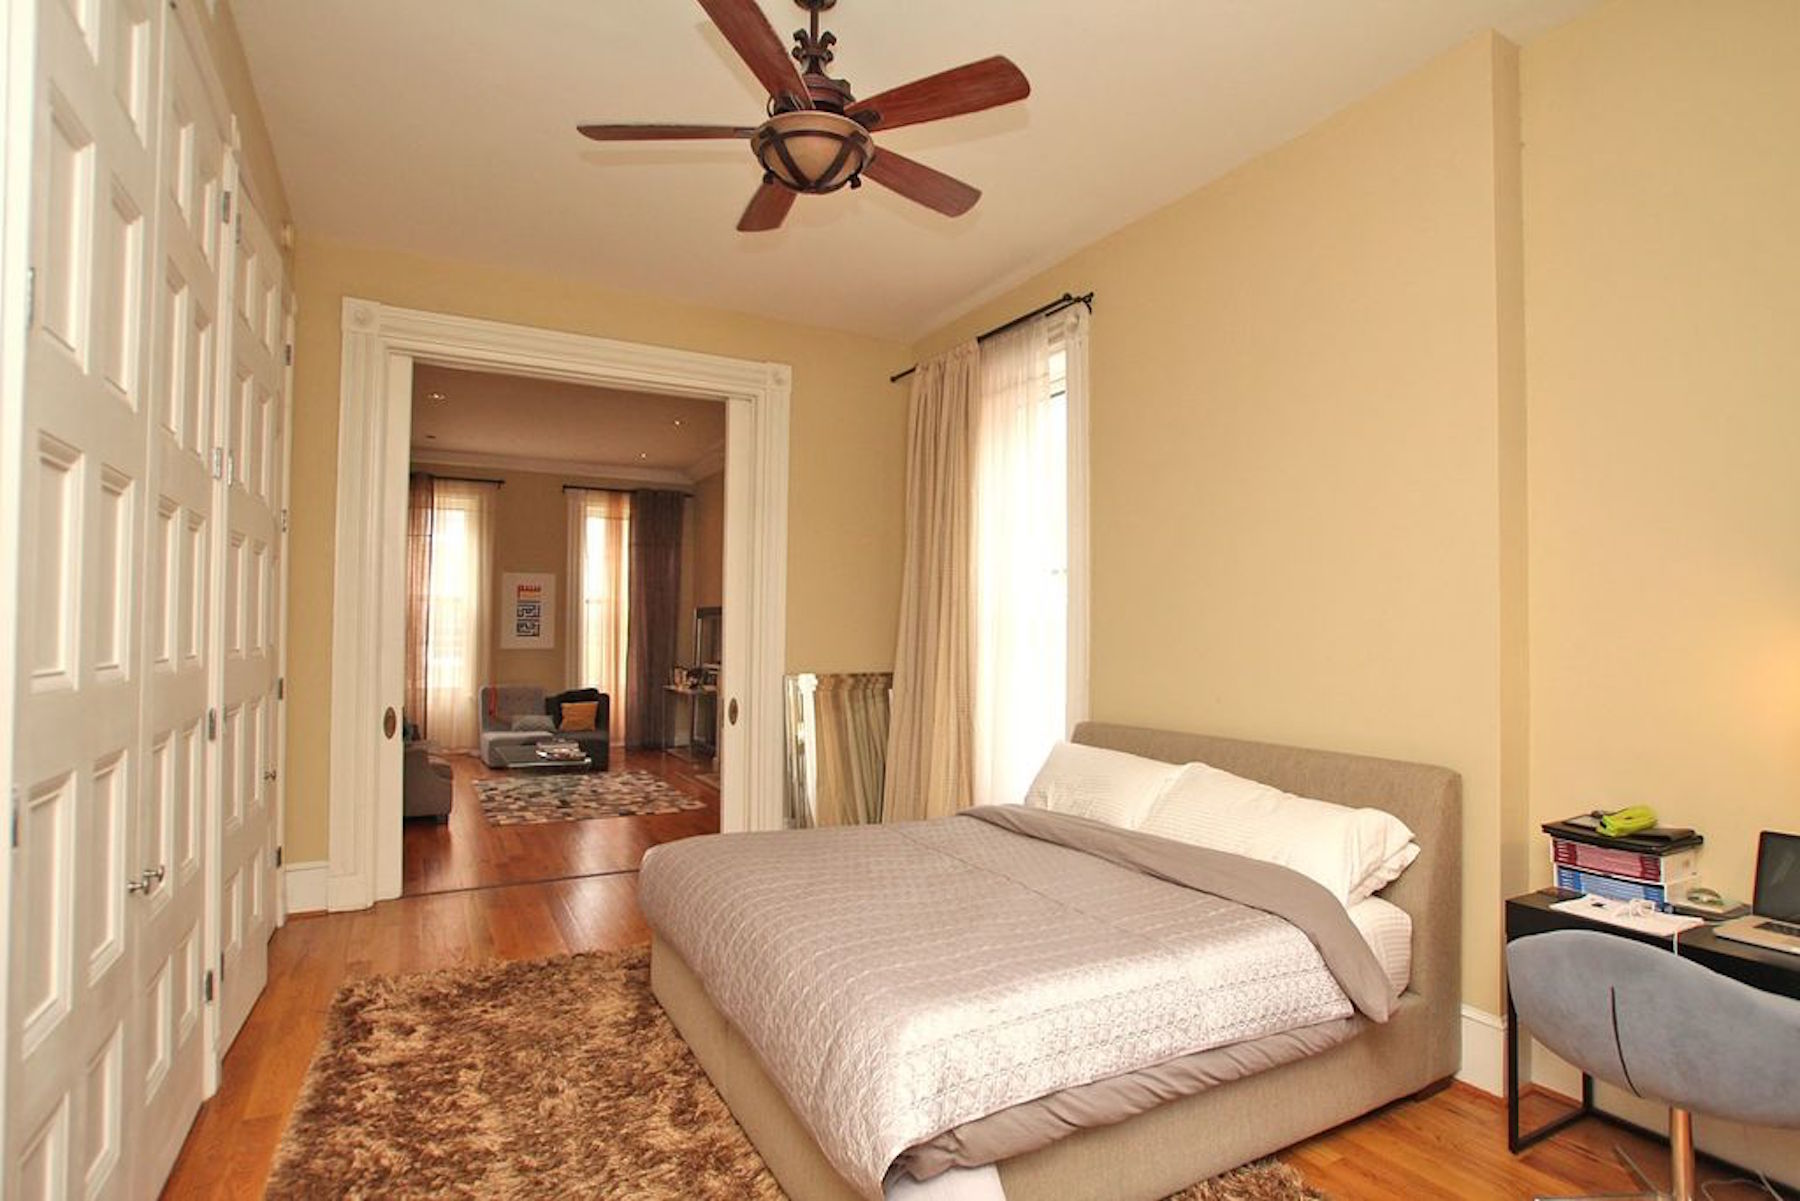 washington square 1 bed 1 center city in washington square is another 1bedroom for rent on the second floor of a corner building